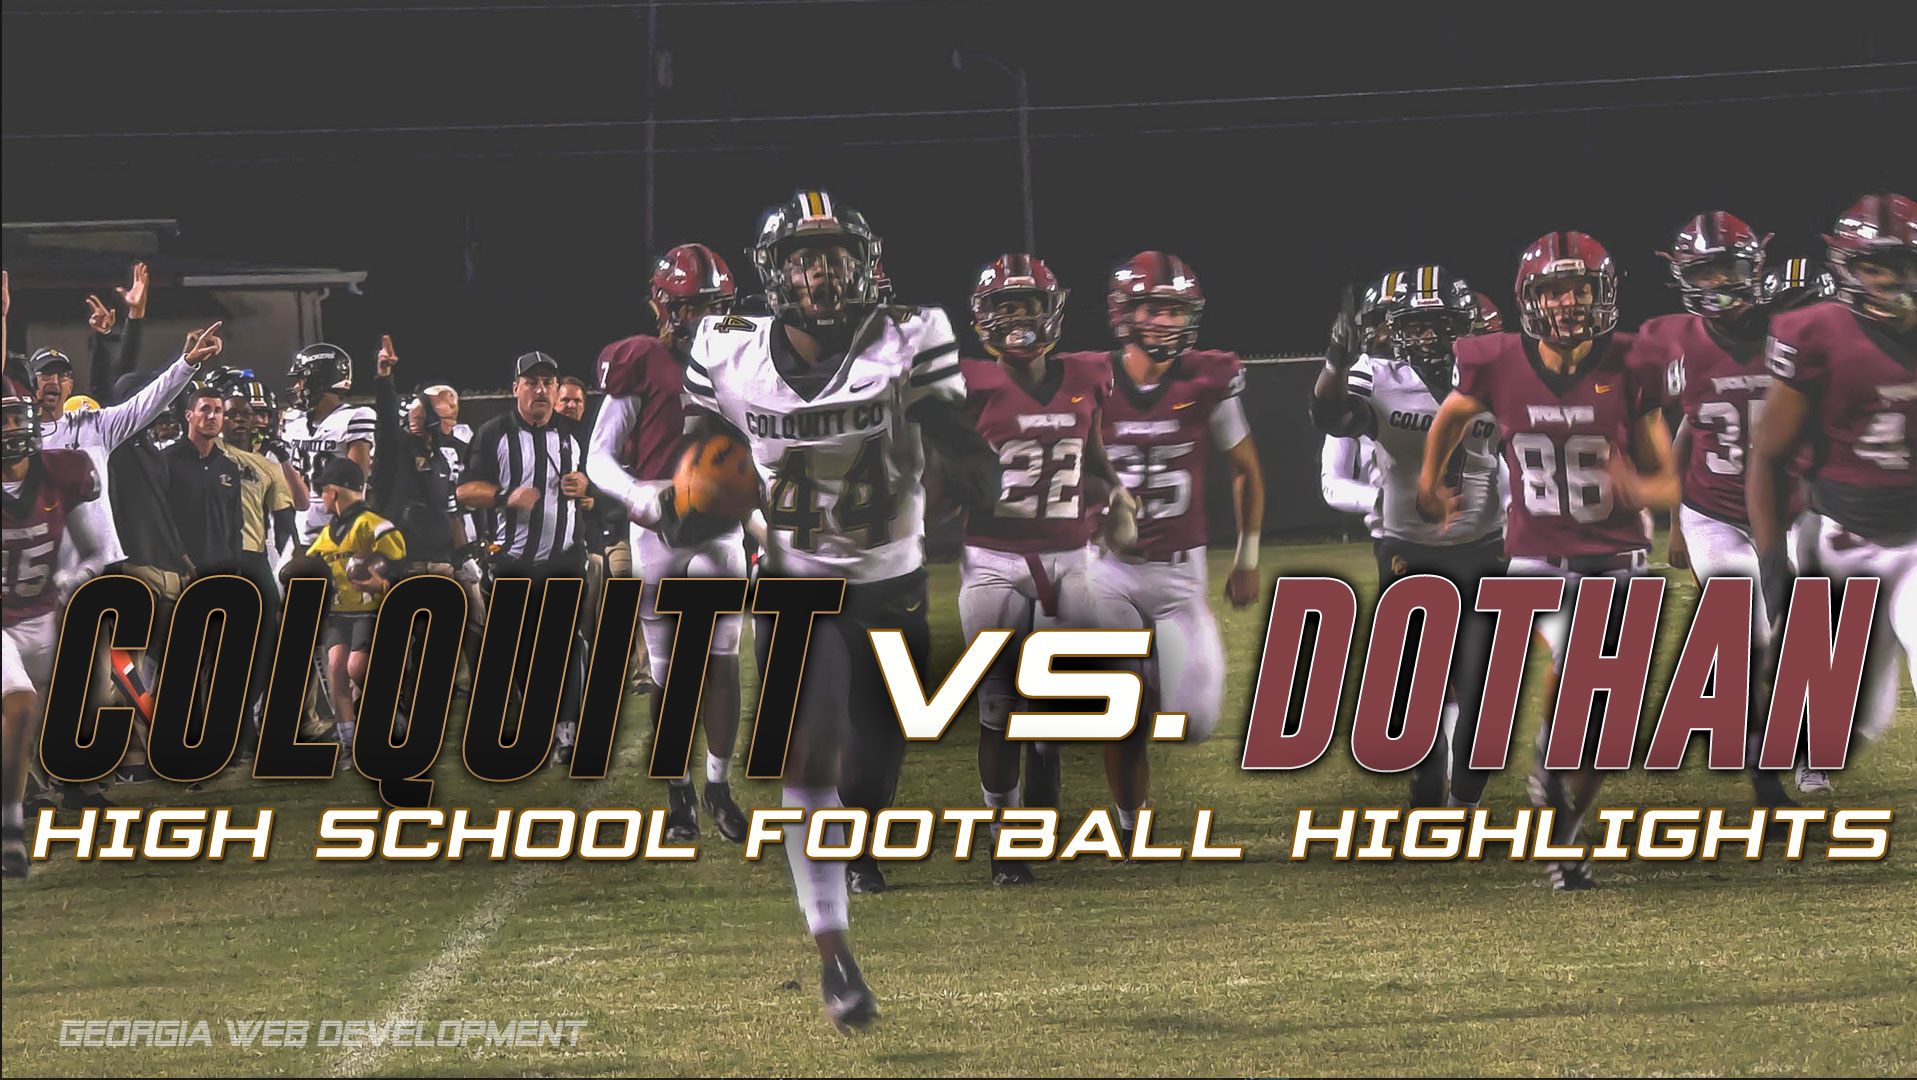 colquitt-vs-dothan-high-school-football-highlights-2020